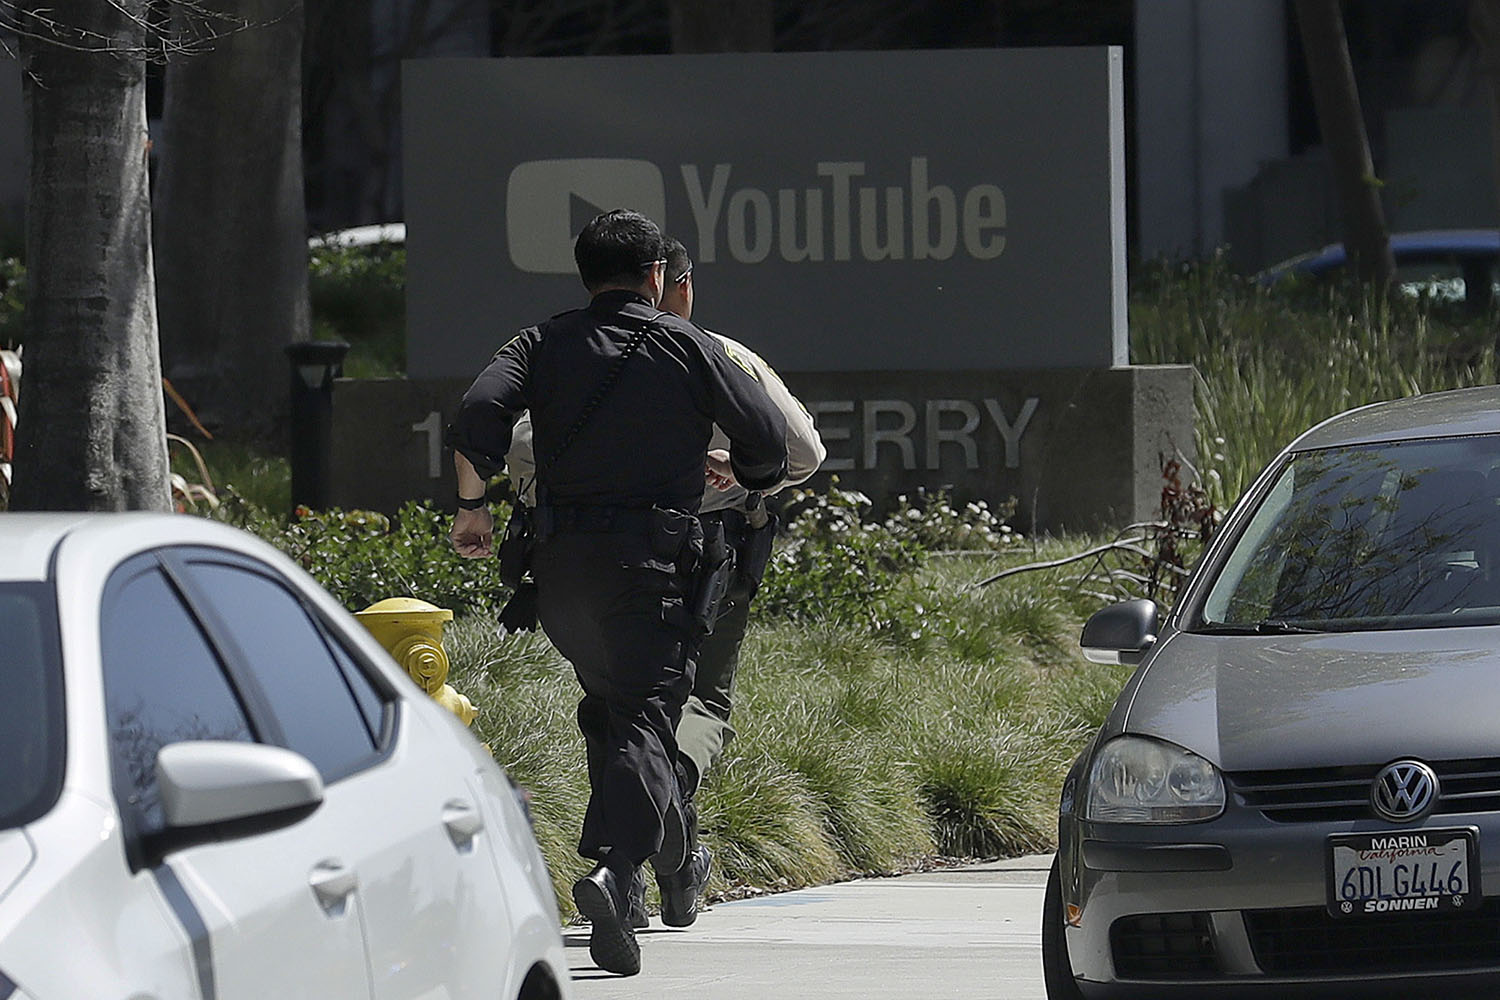 <div class='meta'><div class='origin-logo' data-origin='none'></div><span class='caption-text' data-credit='Jeff Chiu/AP Photo'>Officers run toward a YouTube office in San Bruno, Calif., Tuesday, April 3, 2018. Police say they're responding to an active shooter at YouTube headquarters.</span></div>